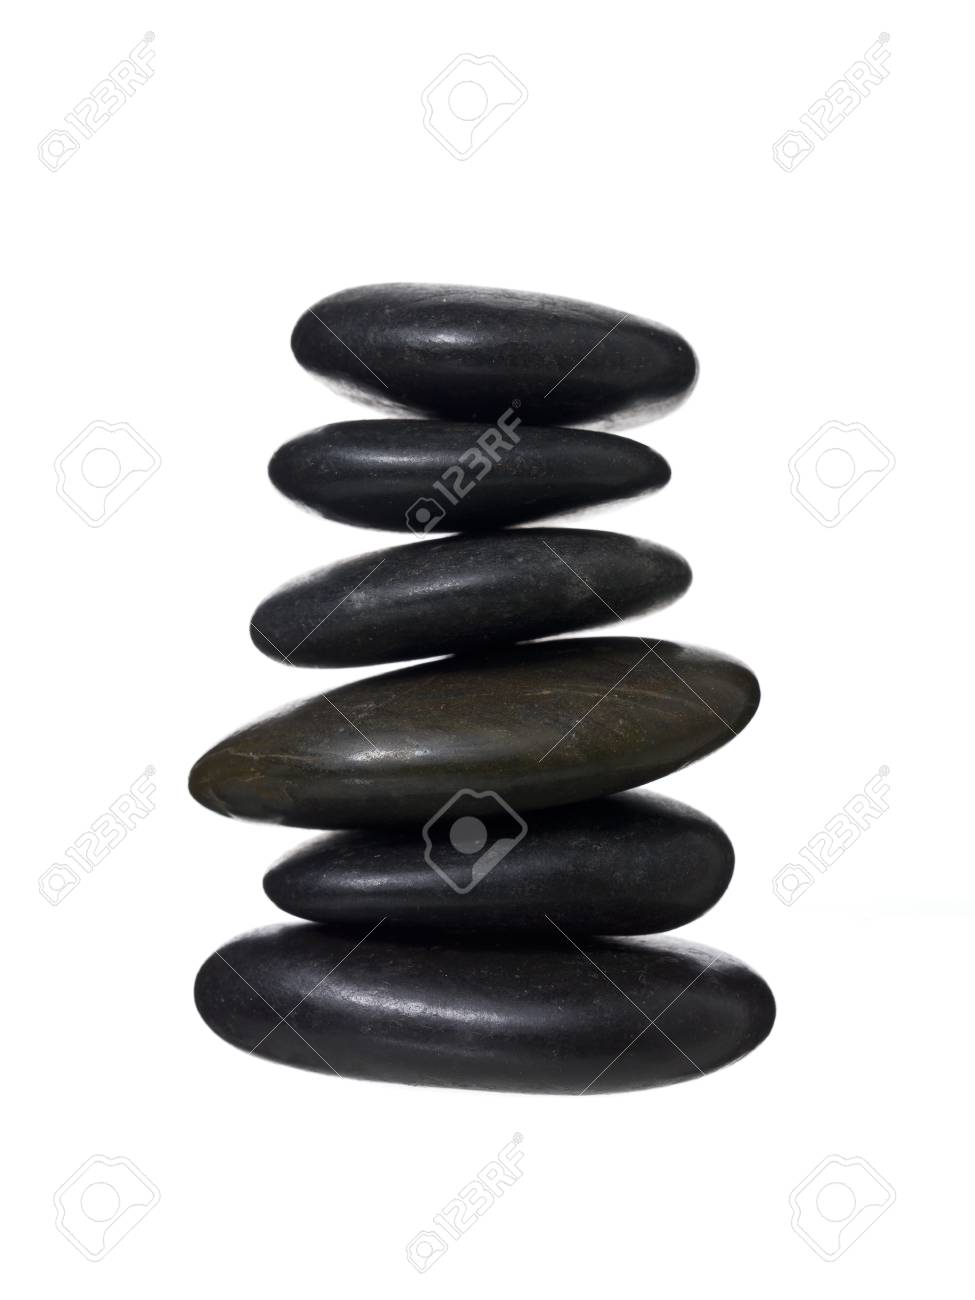 Close up image of spa stones against white background Stock Photo - 16963356